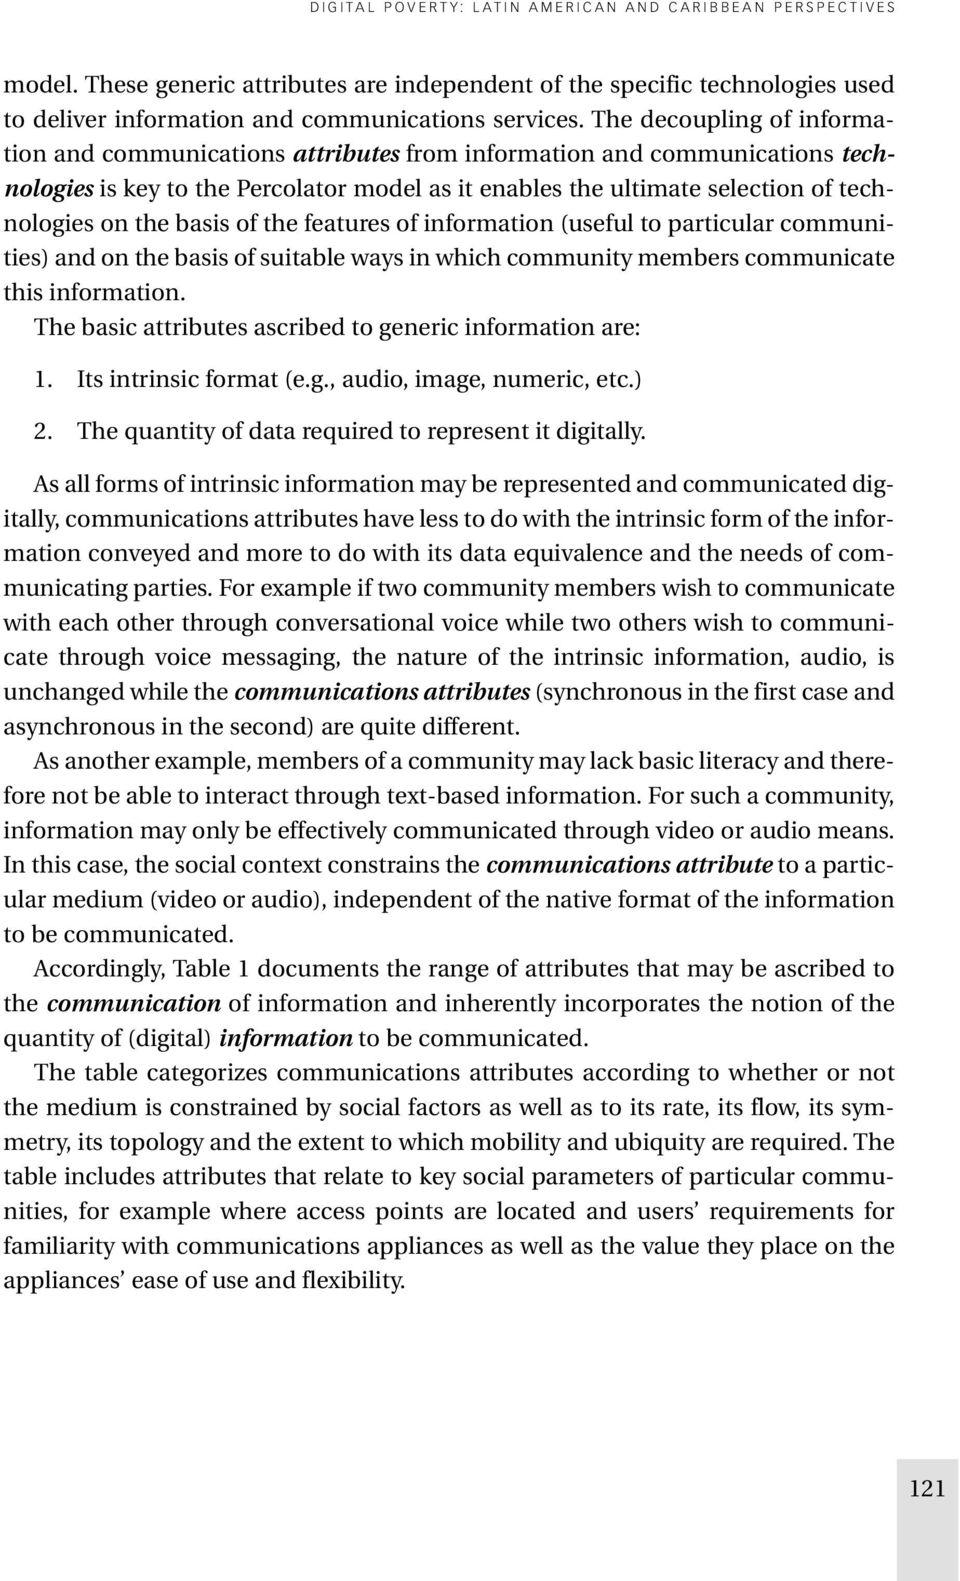 basis of the features of information (useful to particular communities) and on the basis of suitable ways in which community members communicate this information.